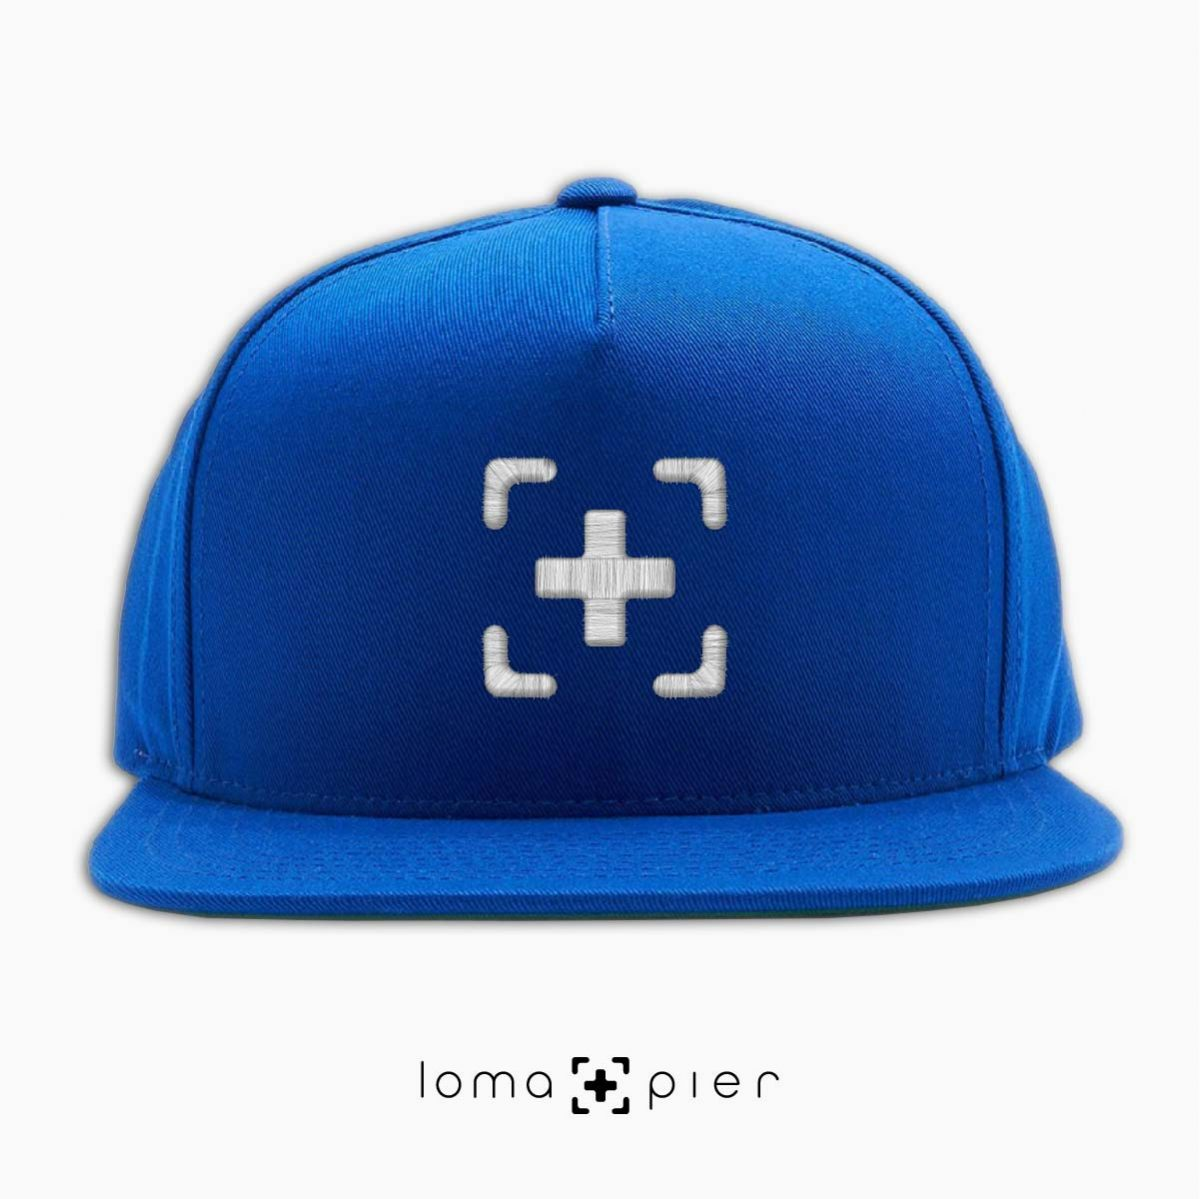 classic snapback cap in royal blue by loma+pier hat shop